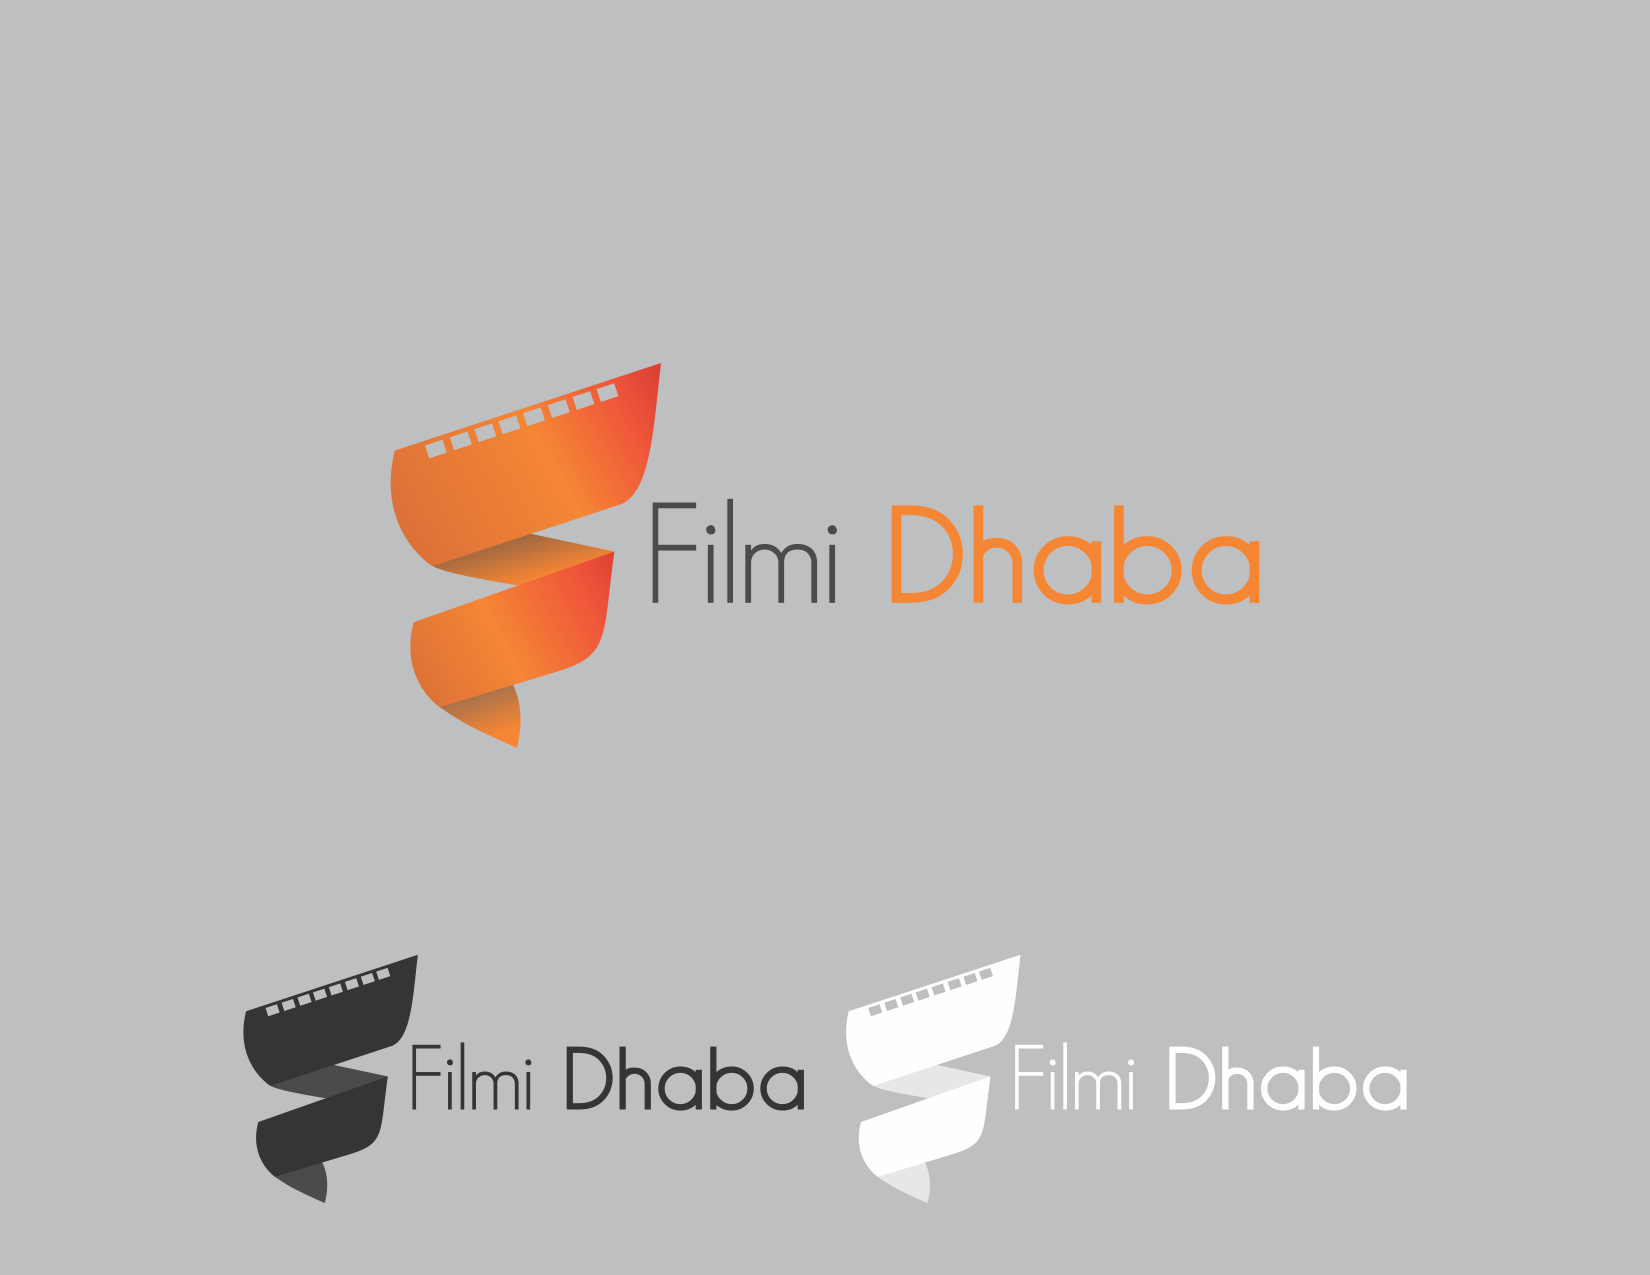 New logo wanted for Filmi Dhaba